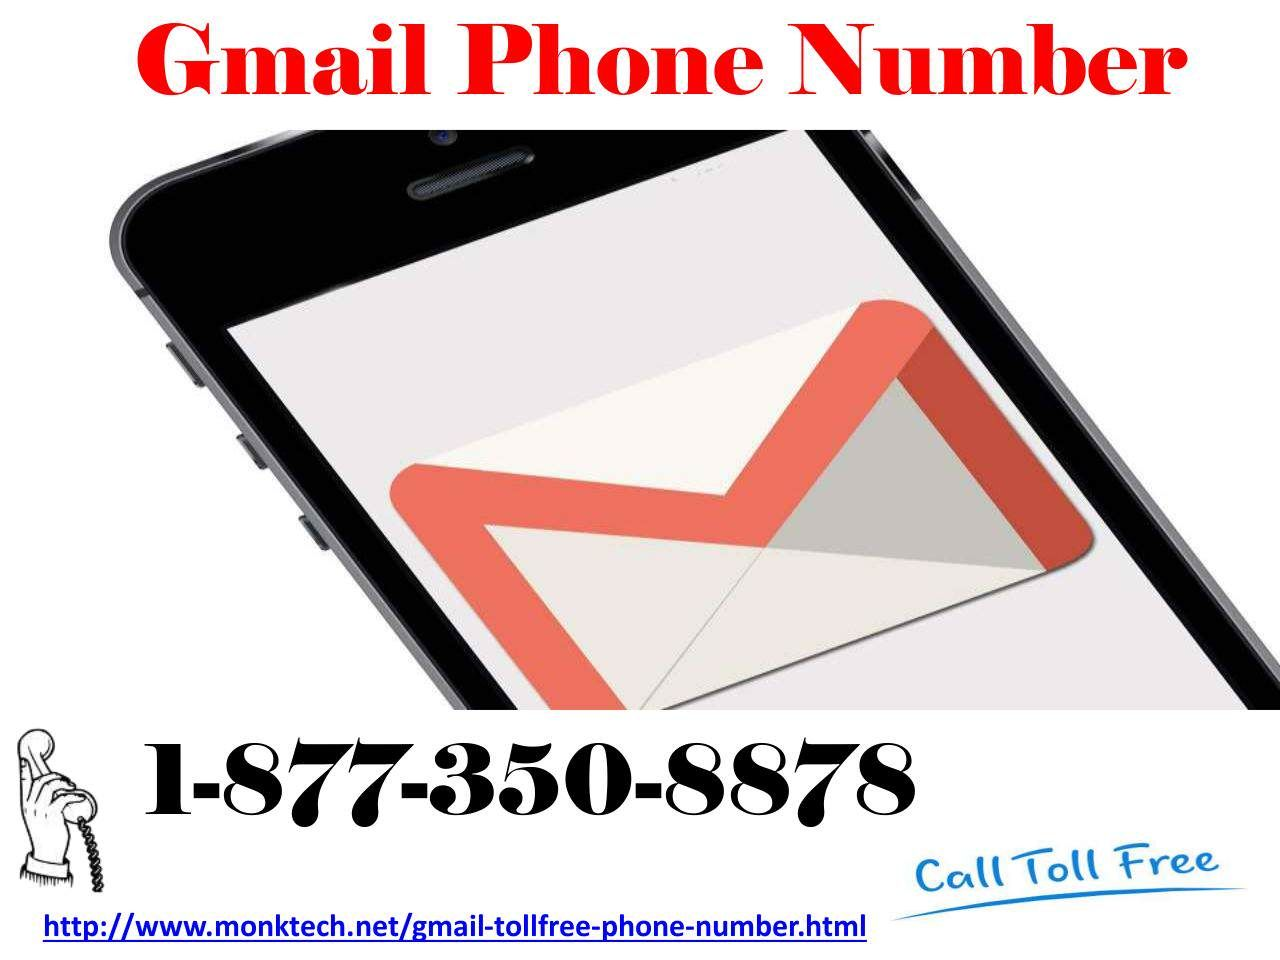 Call at gmail phone number 18773508878 to make your